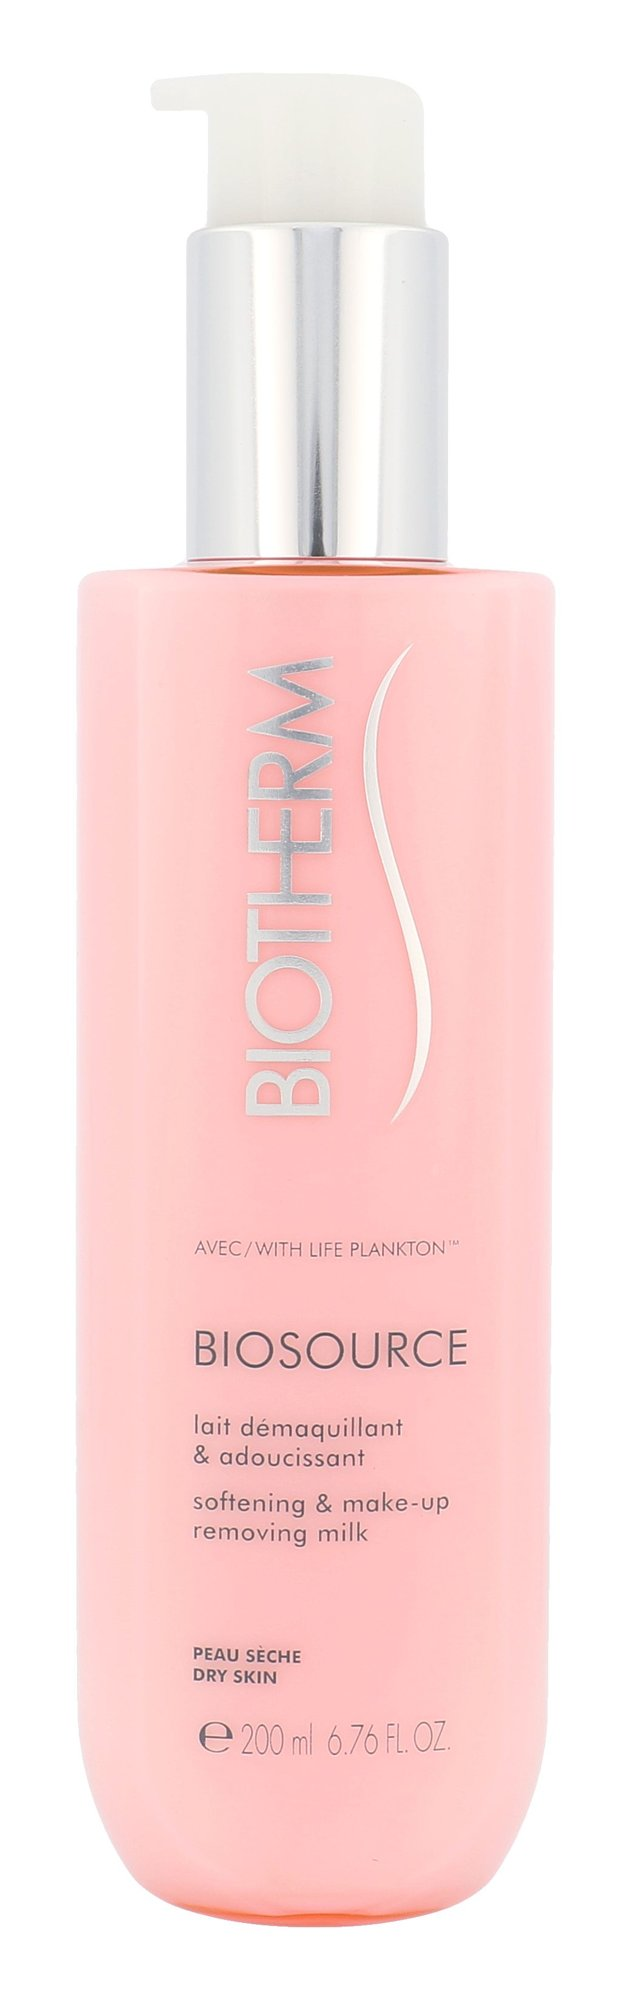 Biotherm Biosource Cosmetic 200ml